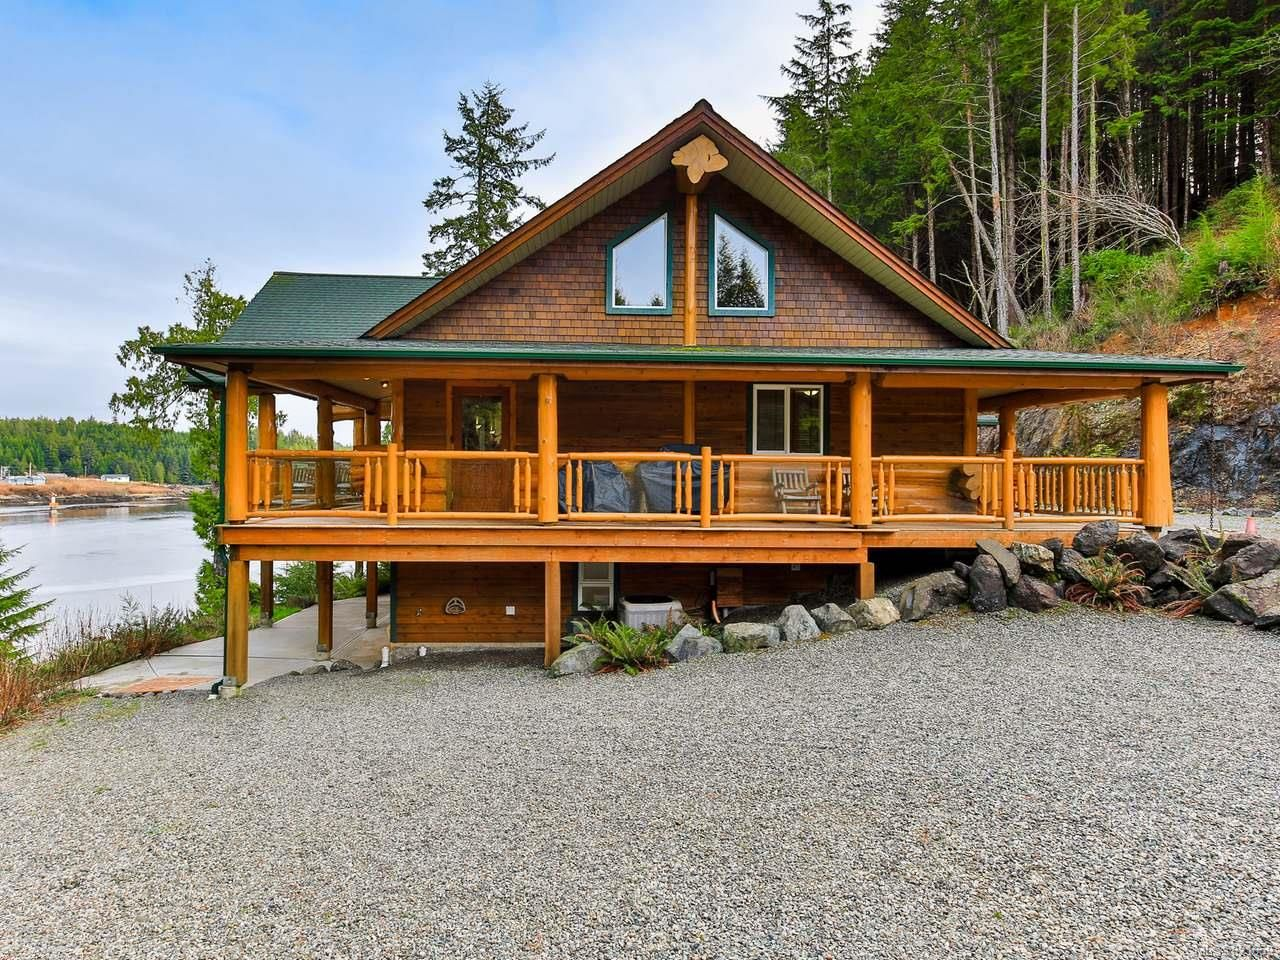 Photo 54: Photos: 1049 Helen Rd in UCLUELET: PA Ucluelet House for sale (Port Alberni)  : MLS®# 821659